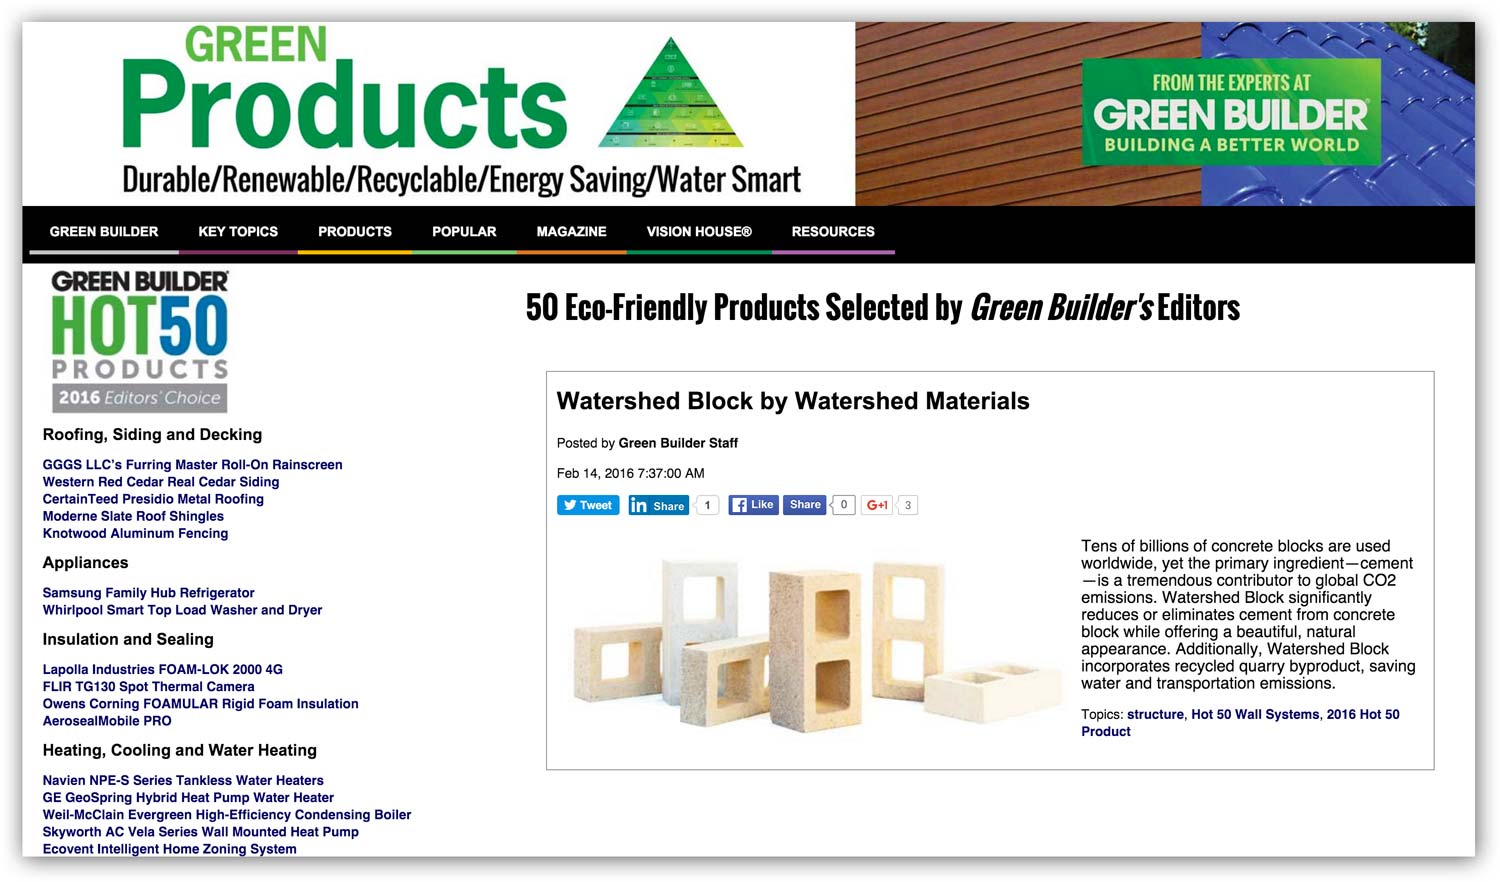 "Green Builder Hot 50 Editor's Choice February 2016    Watershed Block was awarded a 2016 Hot 50 Eco-Friendly Products honor by the editors of Green Builder, selected amongst innovative green products from industry heavyweights including Tesla, Samsung, Whirlpool, Owens Corning, Enphase, Panasonic and Bosch. ""This is not your average year for product innovation,"" says Green Builder magazine Editor-in-Chief Matt Power. ""For the first time, high-tech gadgets have begun to overlap with building products in very significant ways."""